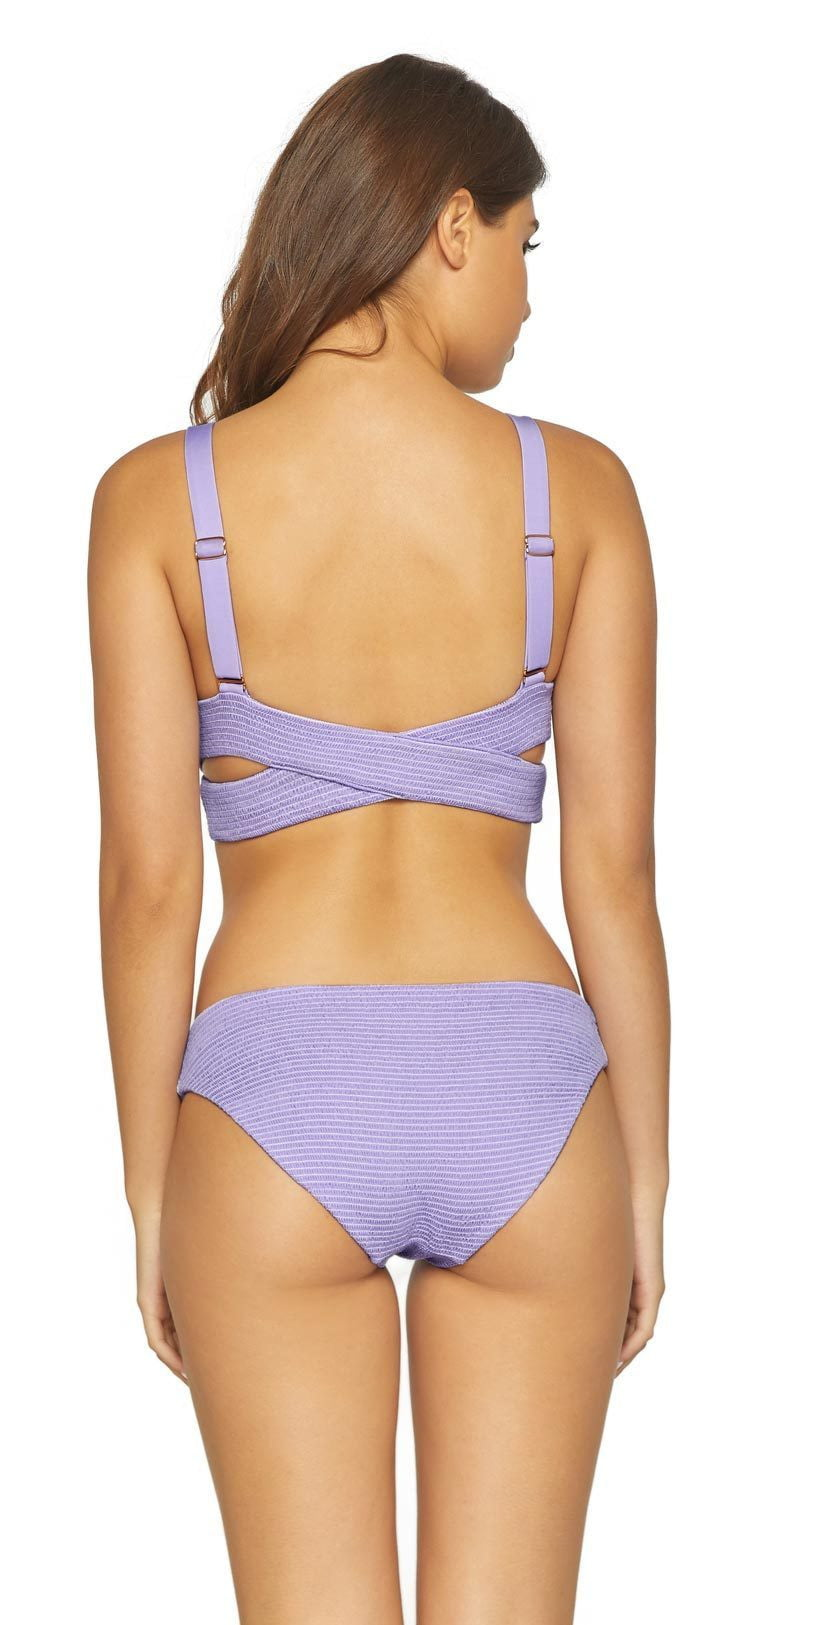 PilyQ Smocked Full Bikini Bottom in Lavender LAV-237F: